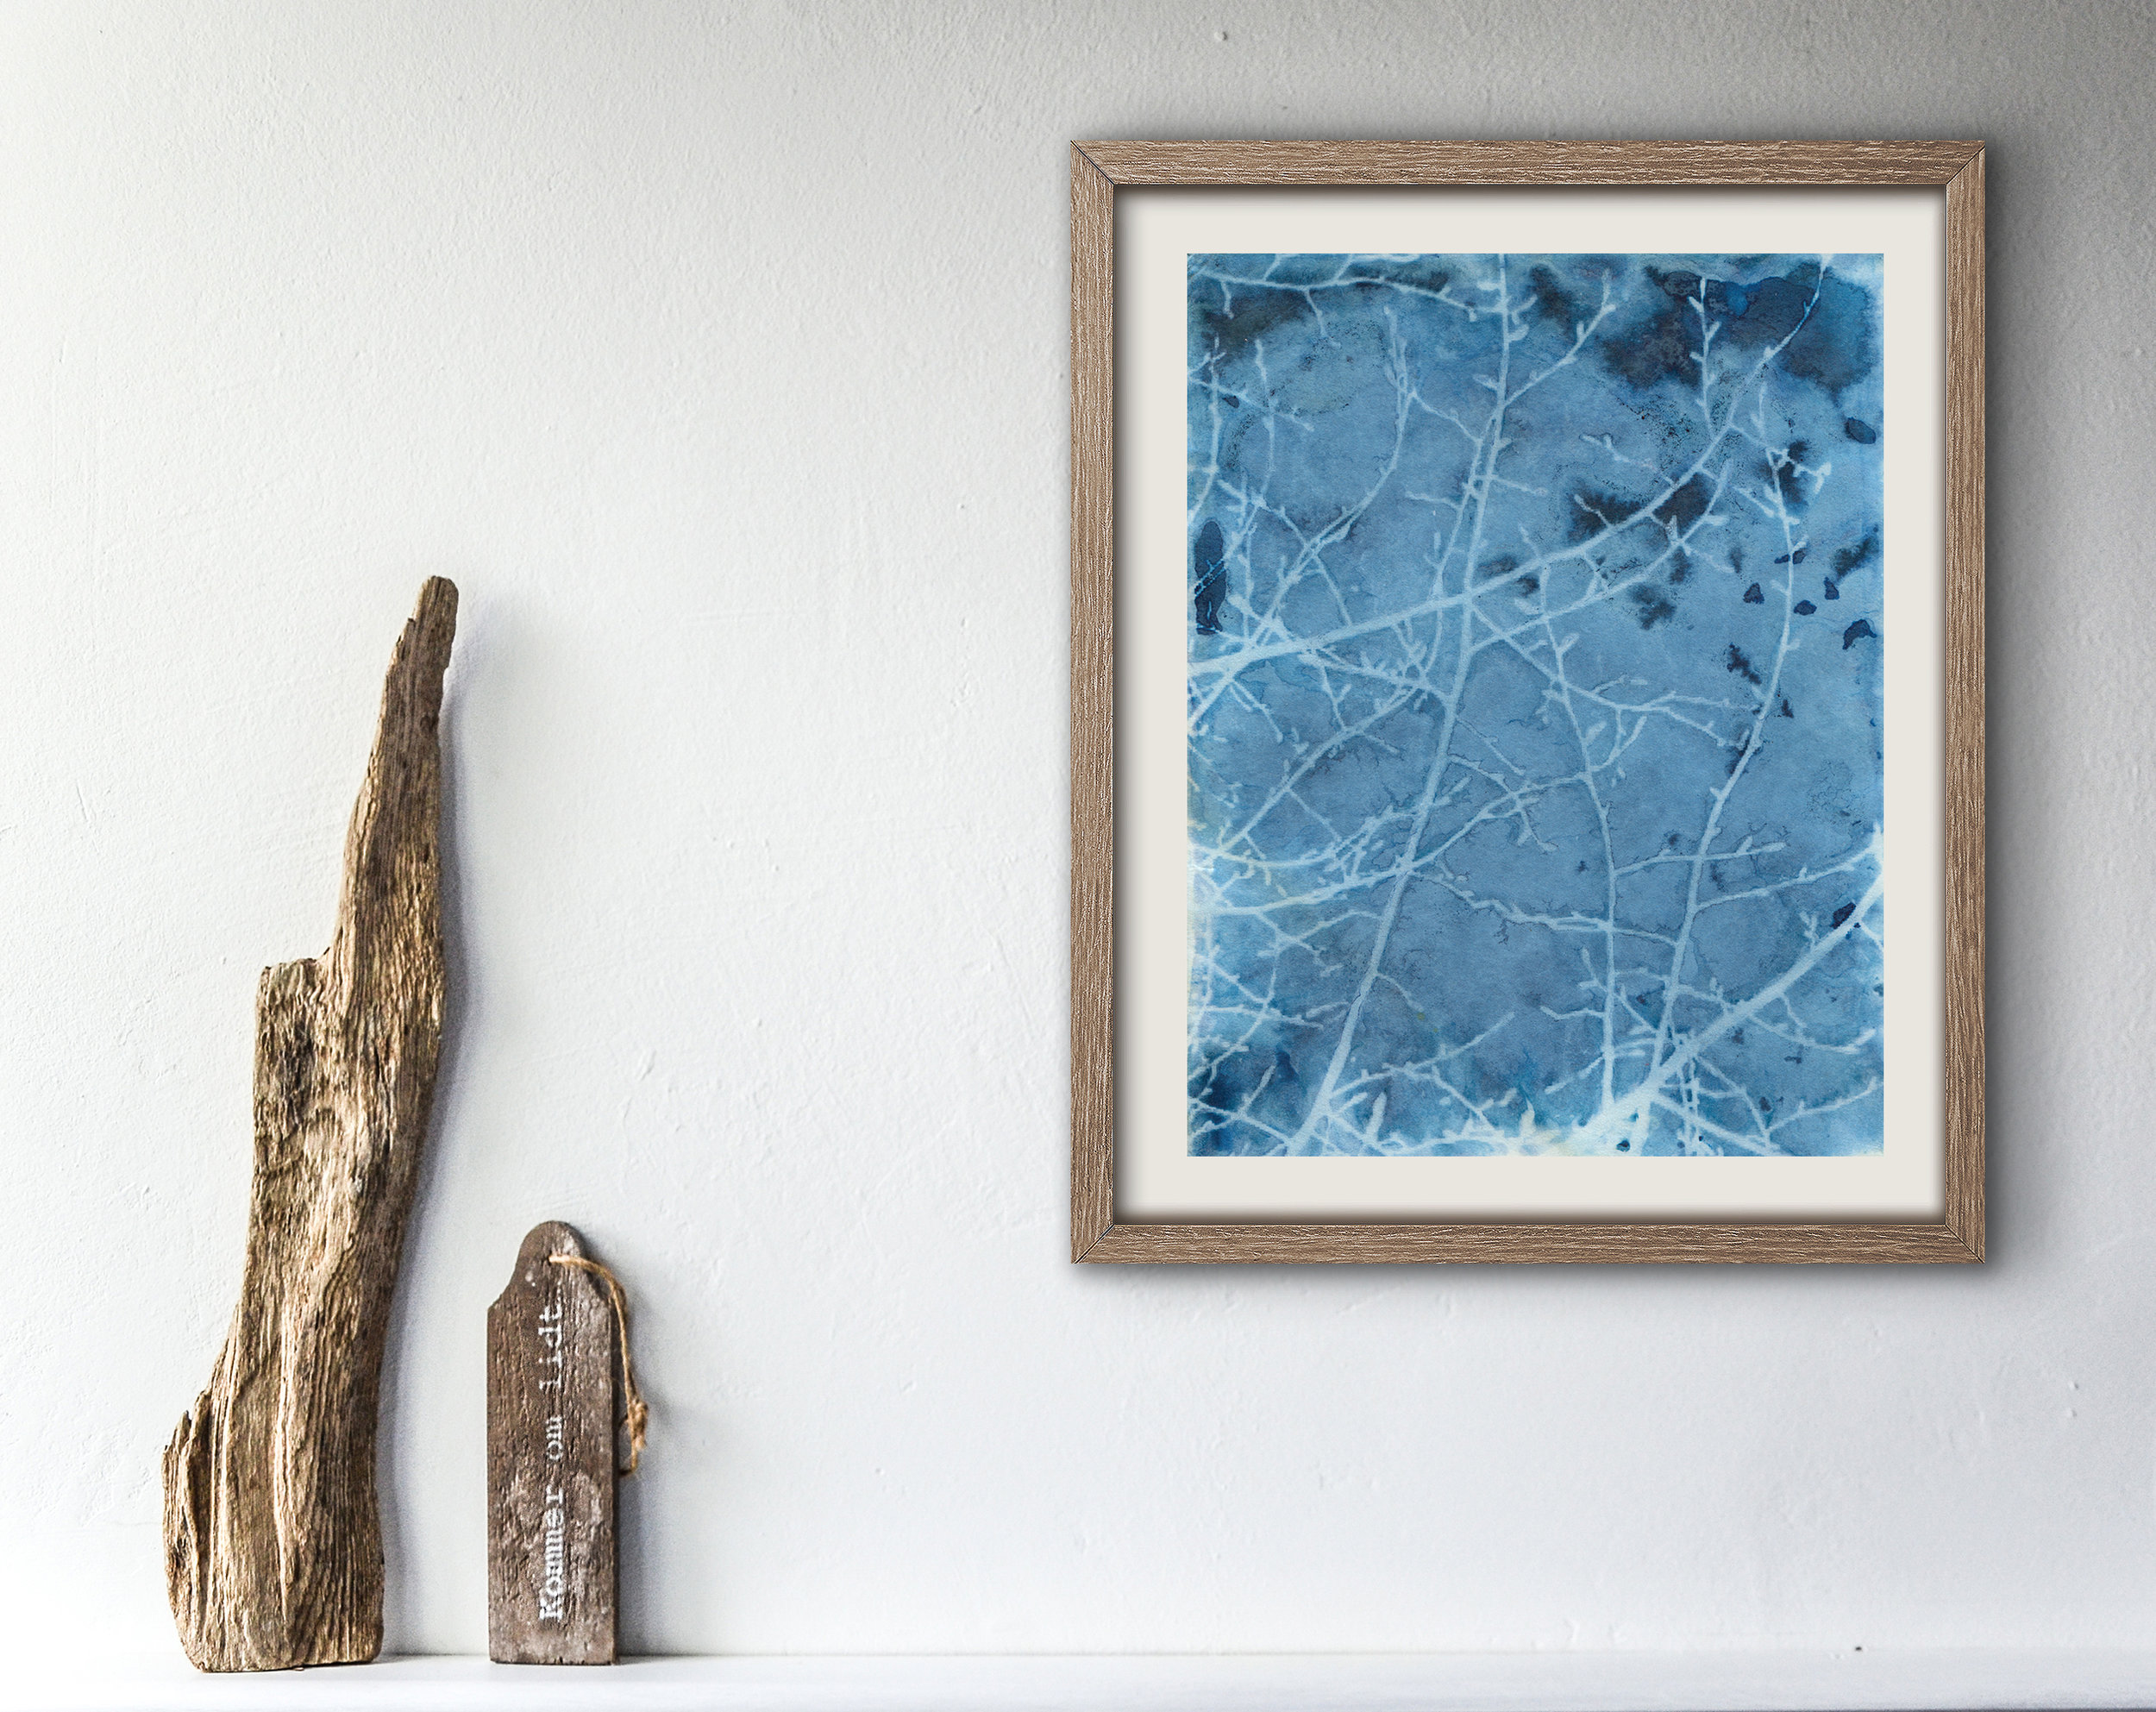 'Crackled' Cyanotype Print by Krista McCurdy